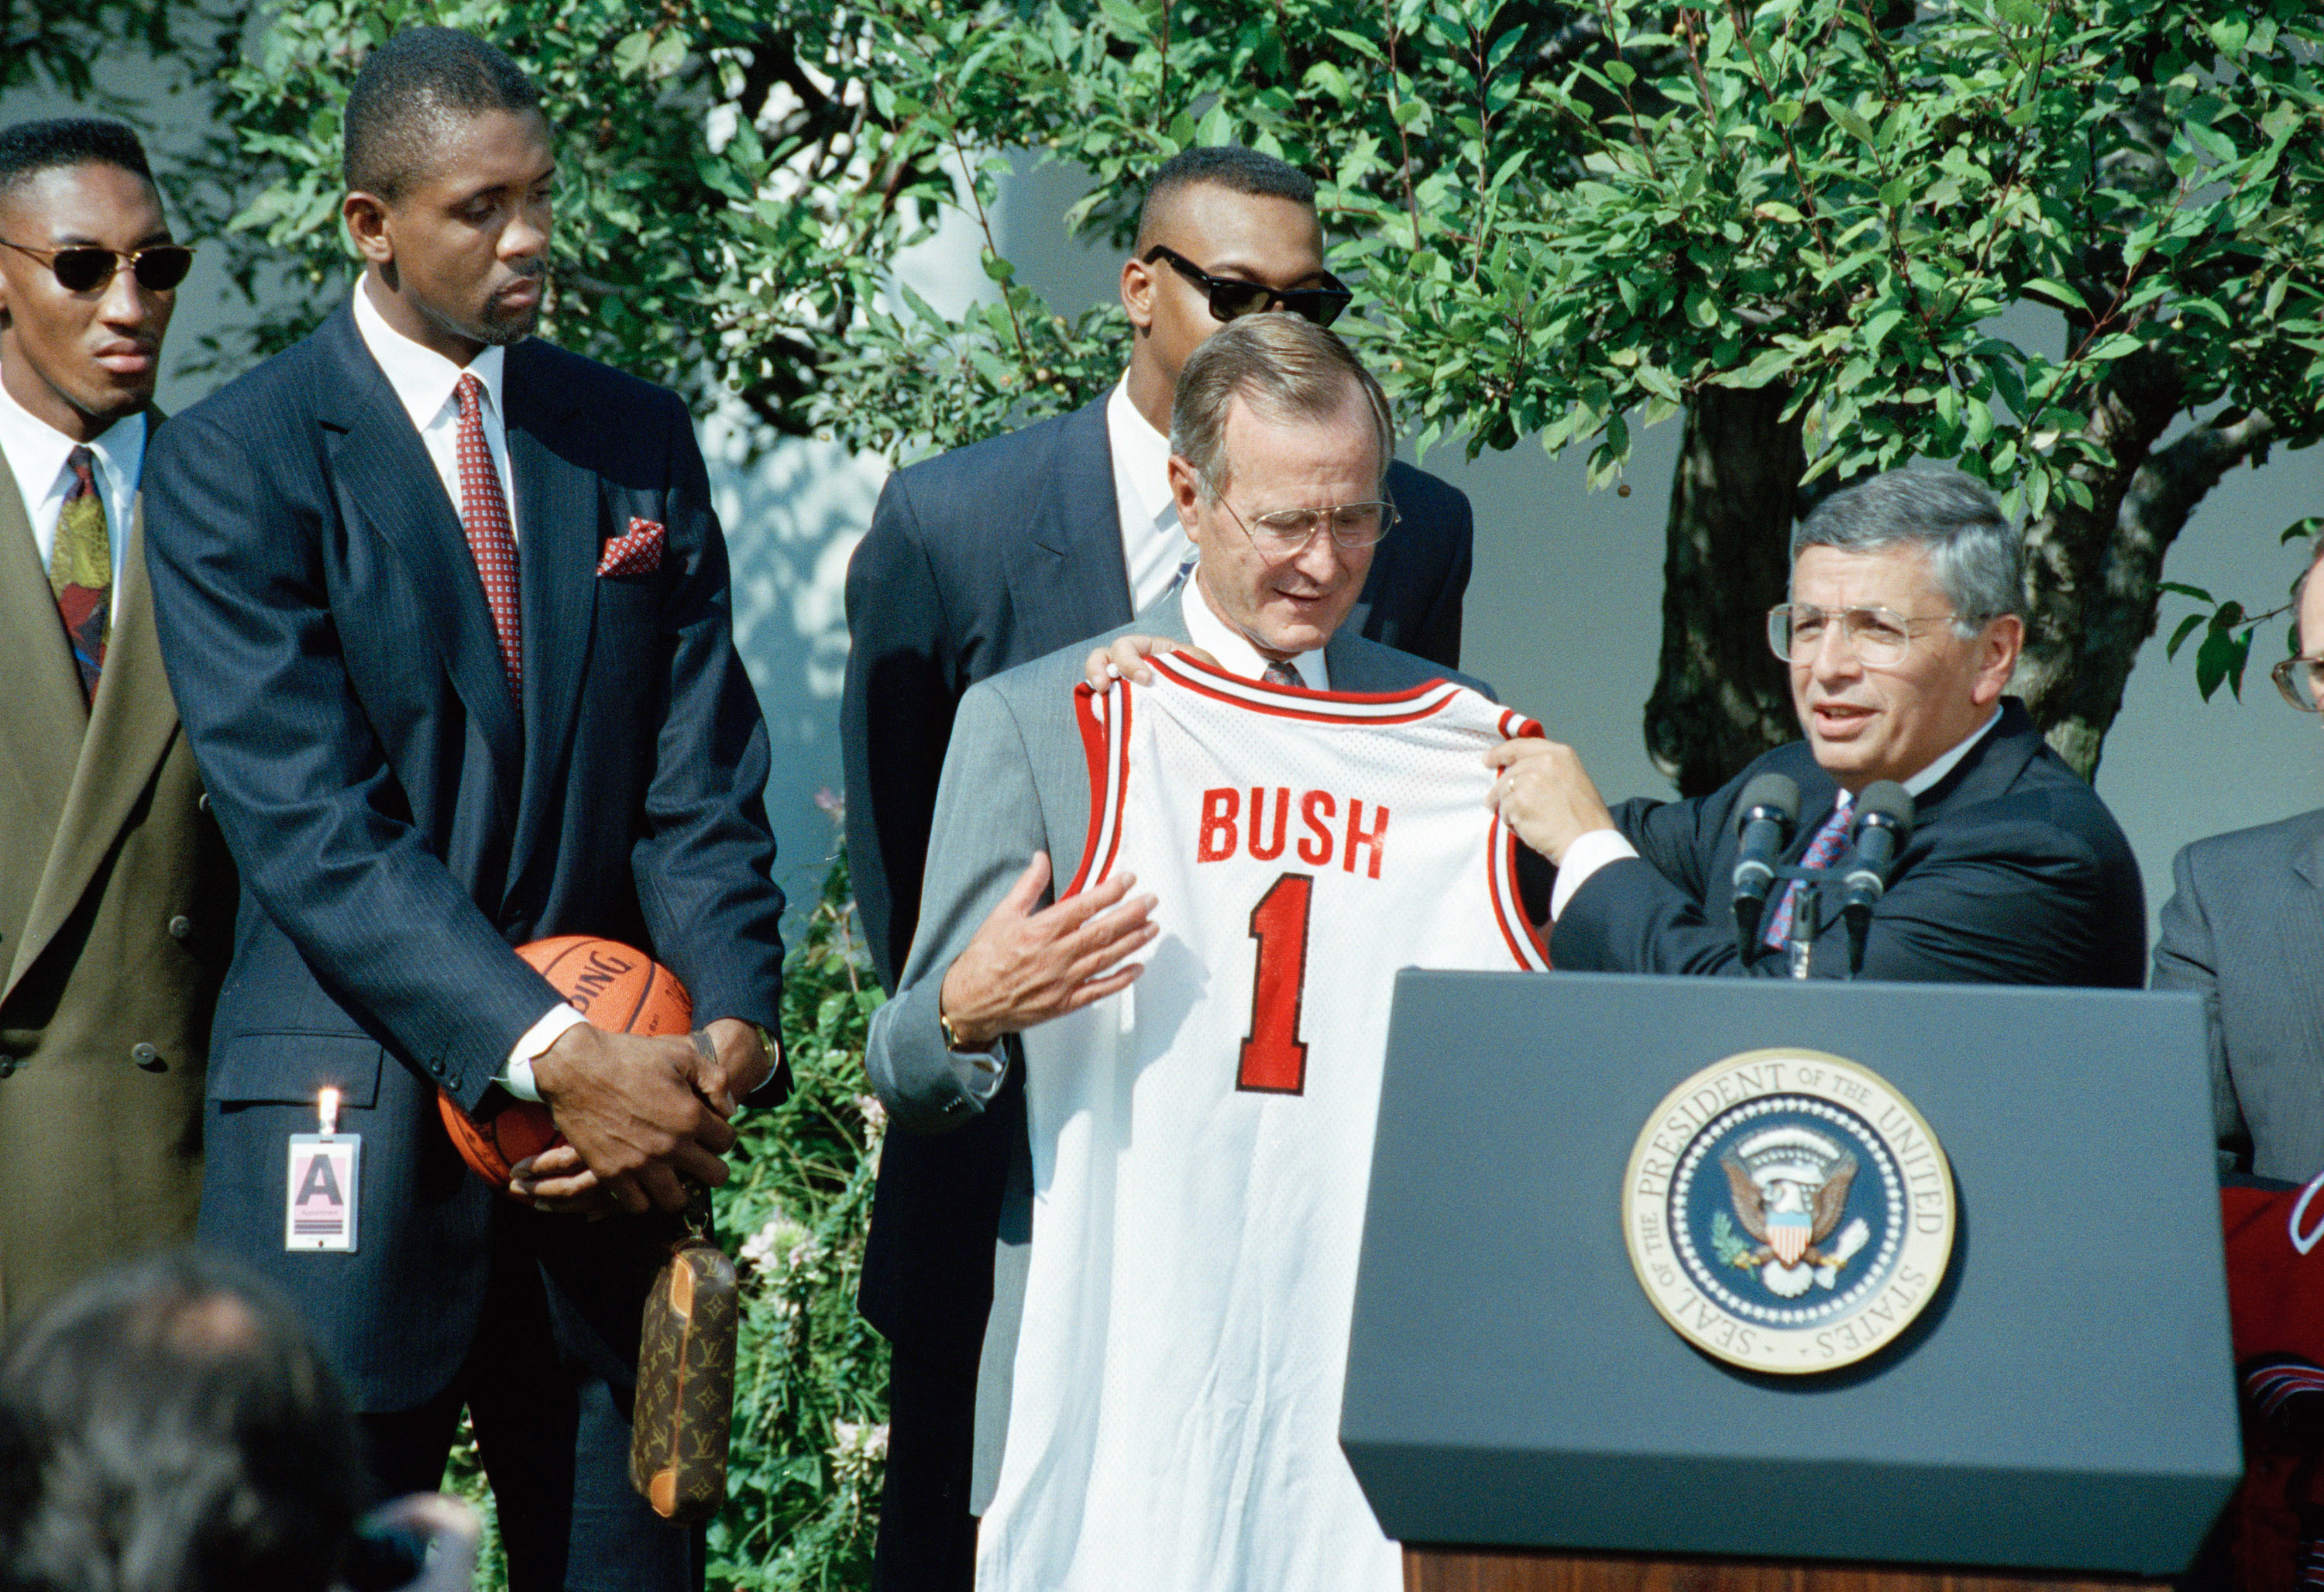 NBA Commissioner David Stern presents President Bush with a Chicago Bulls jersey during a Rose Garden ceremony.